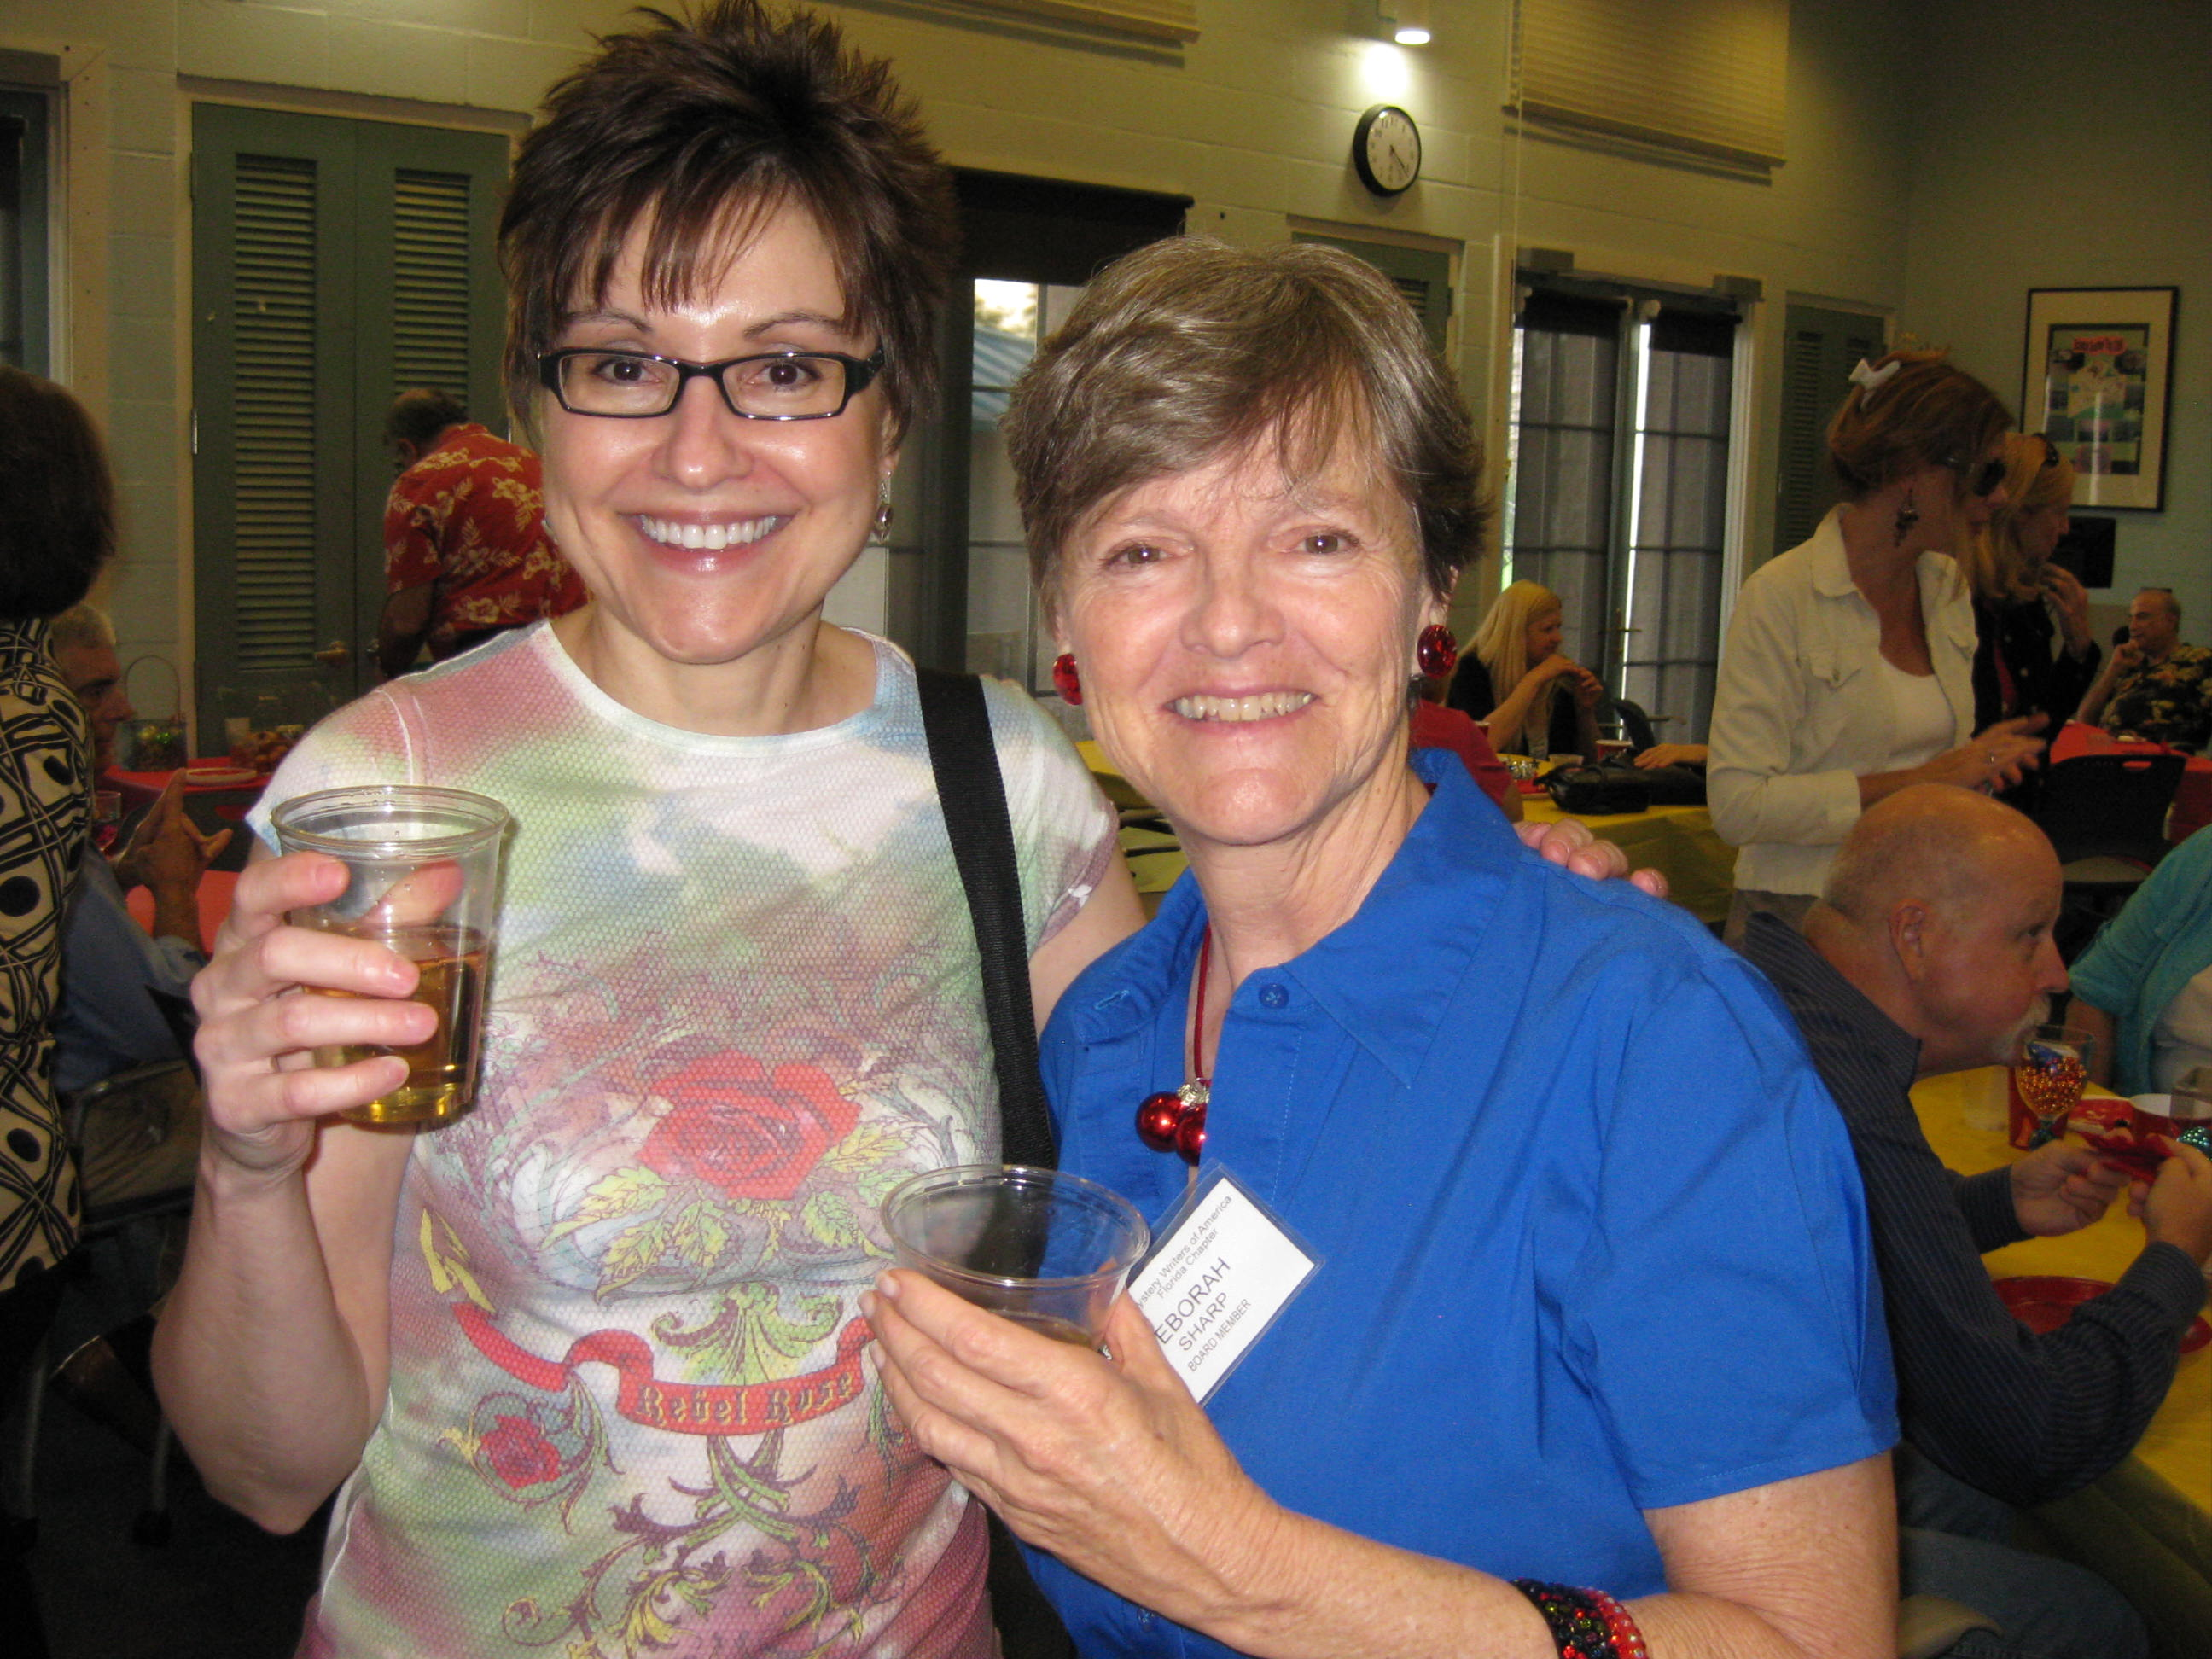 Mitzi Szereto with author Deborah Sharp in South Florida